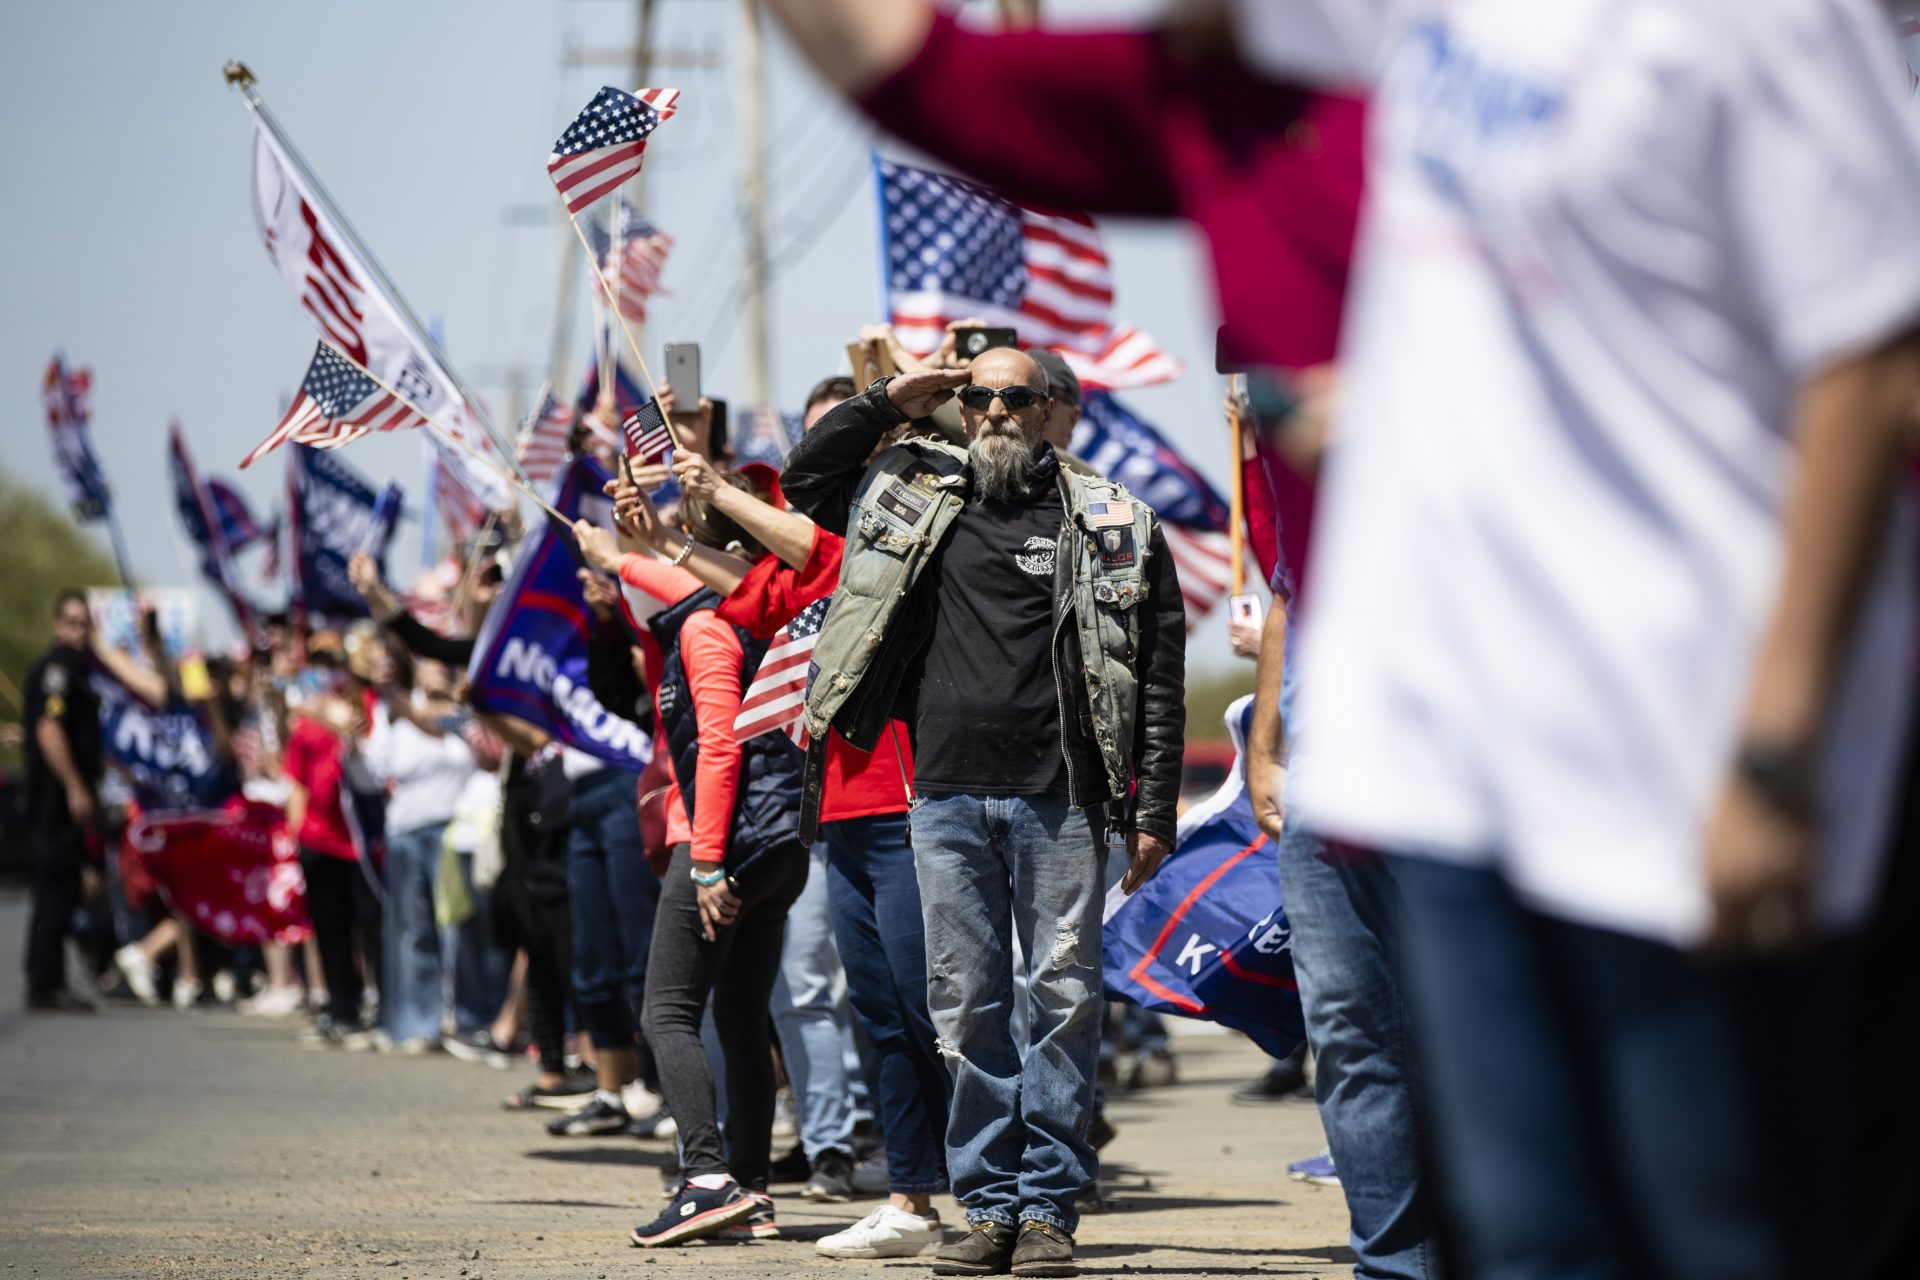 A man salutes as President Donald Trump's motorcade drives past on Thursday, May 14, 2020, in Allentown, Pa.